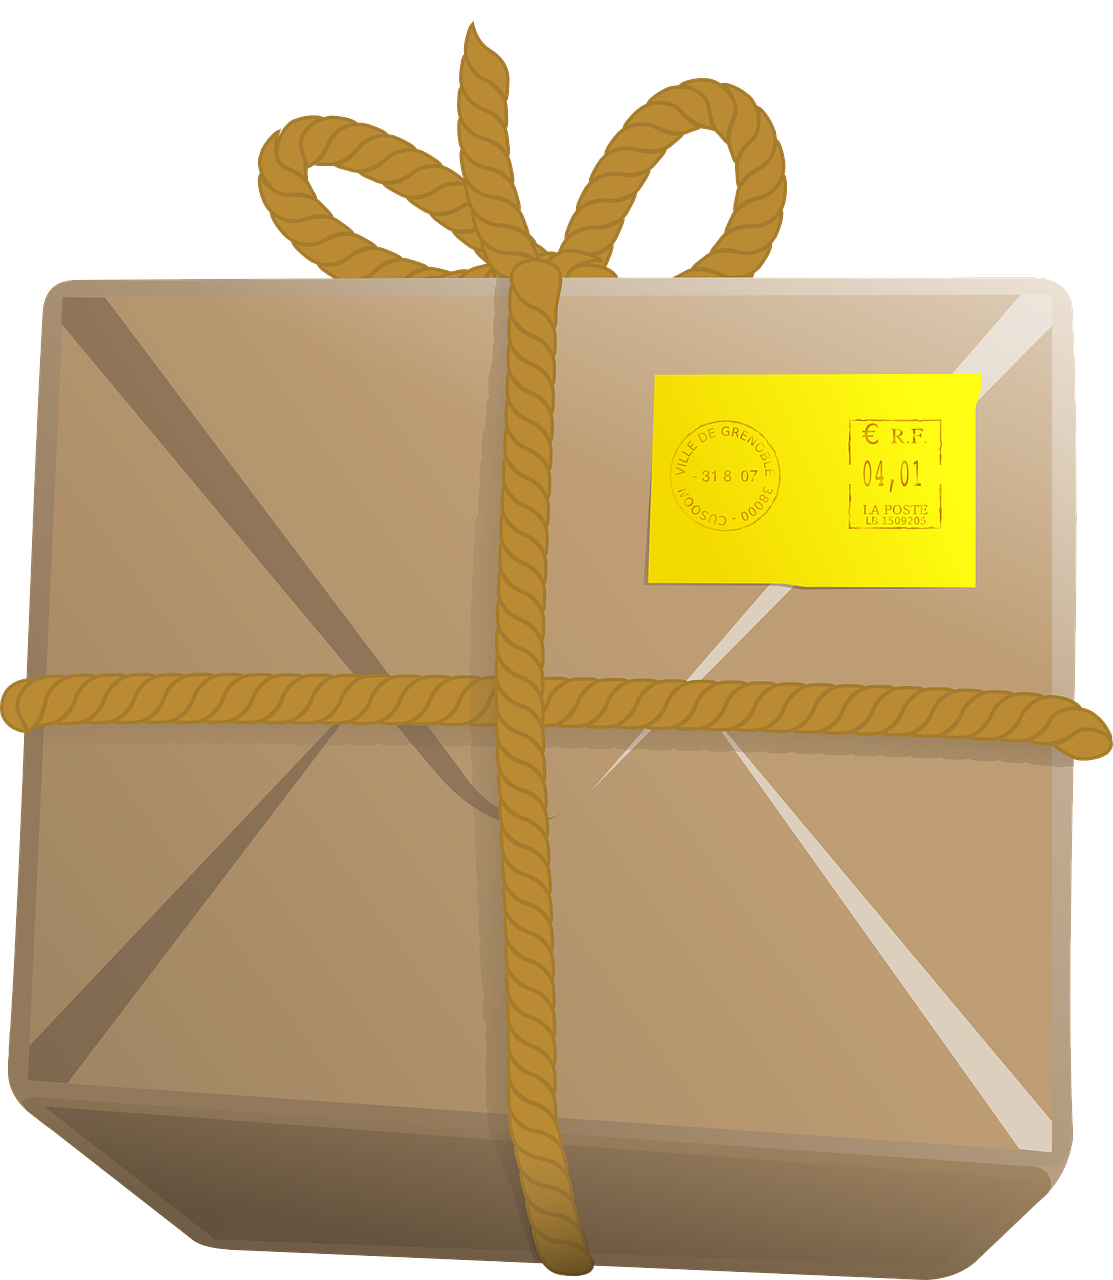 Image result for delivery package service